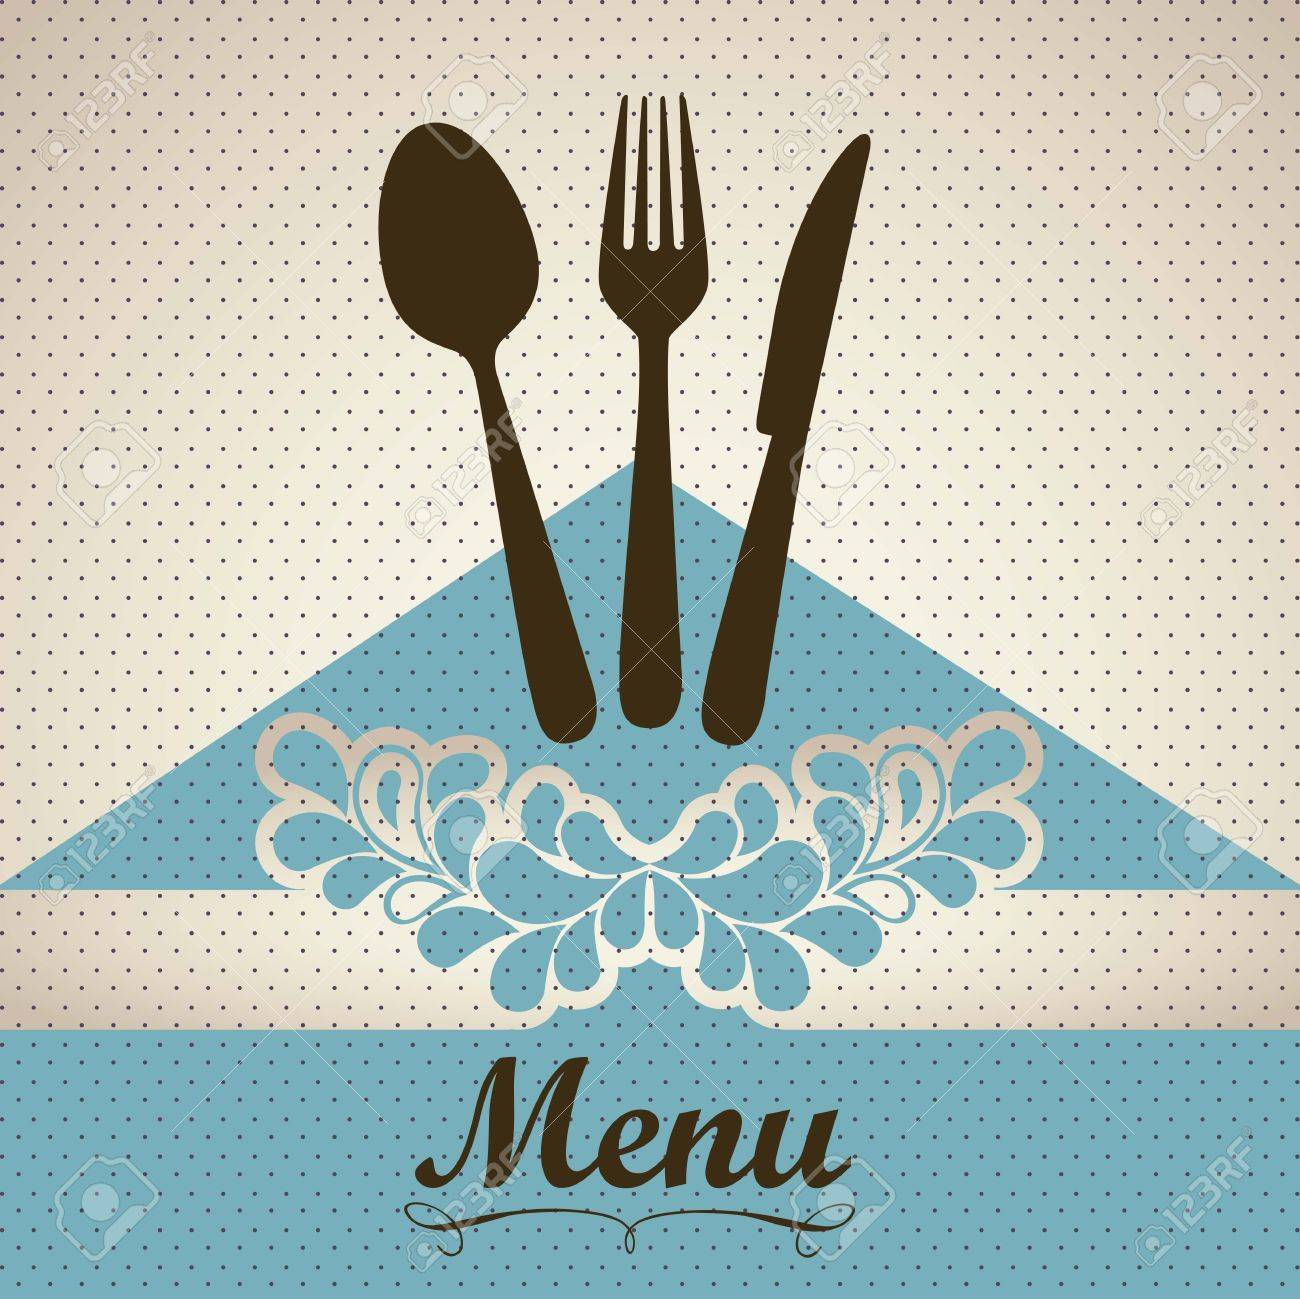 Illustration of Menu retro. Vintage restaurant menu, vector illustration Stock Vector - 16184614